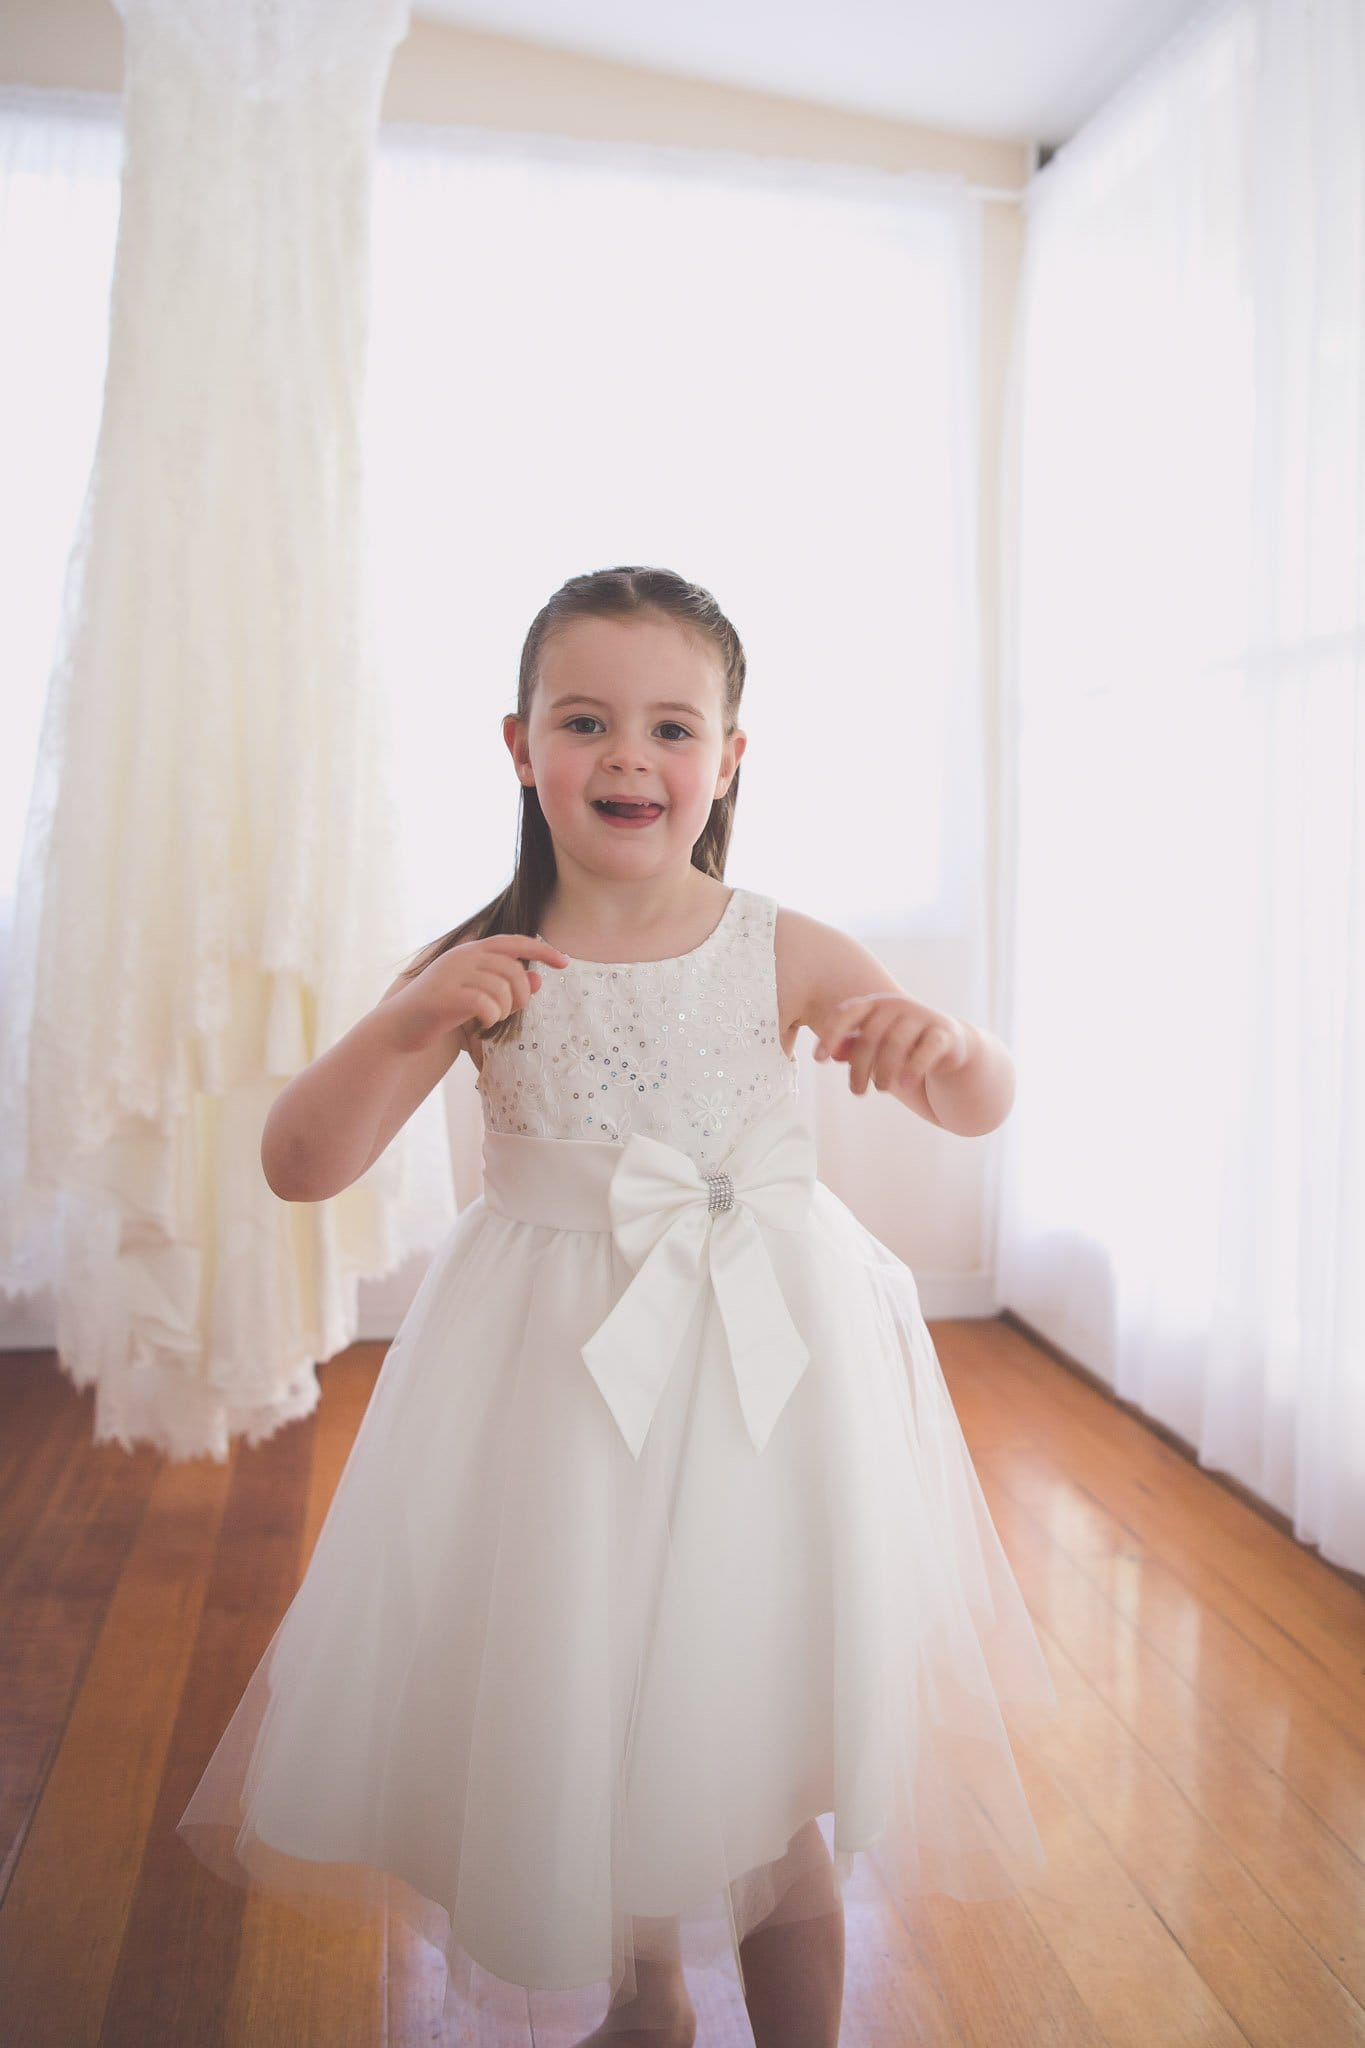 Melbourne wedding photography of a flower girl smiling in front of a wedding dress